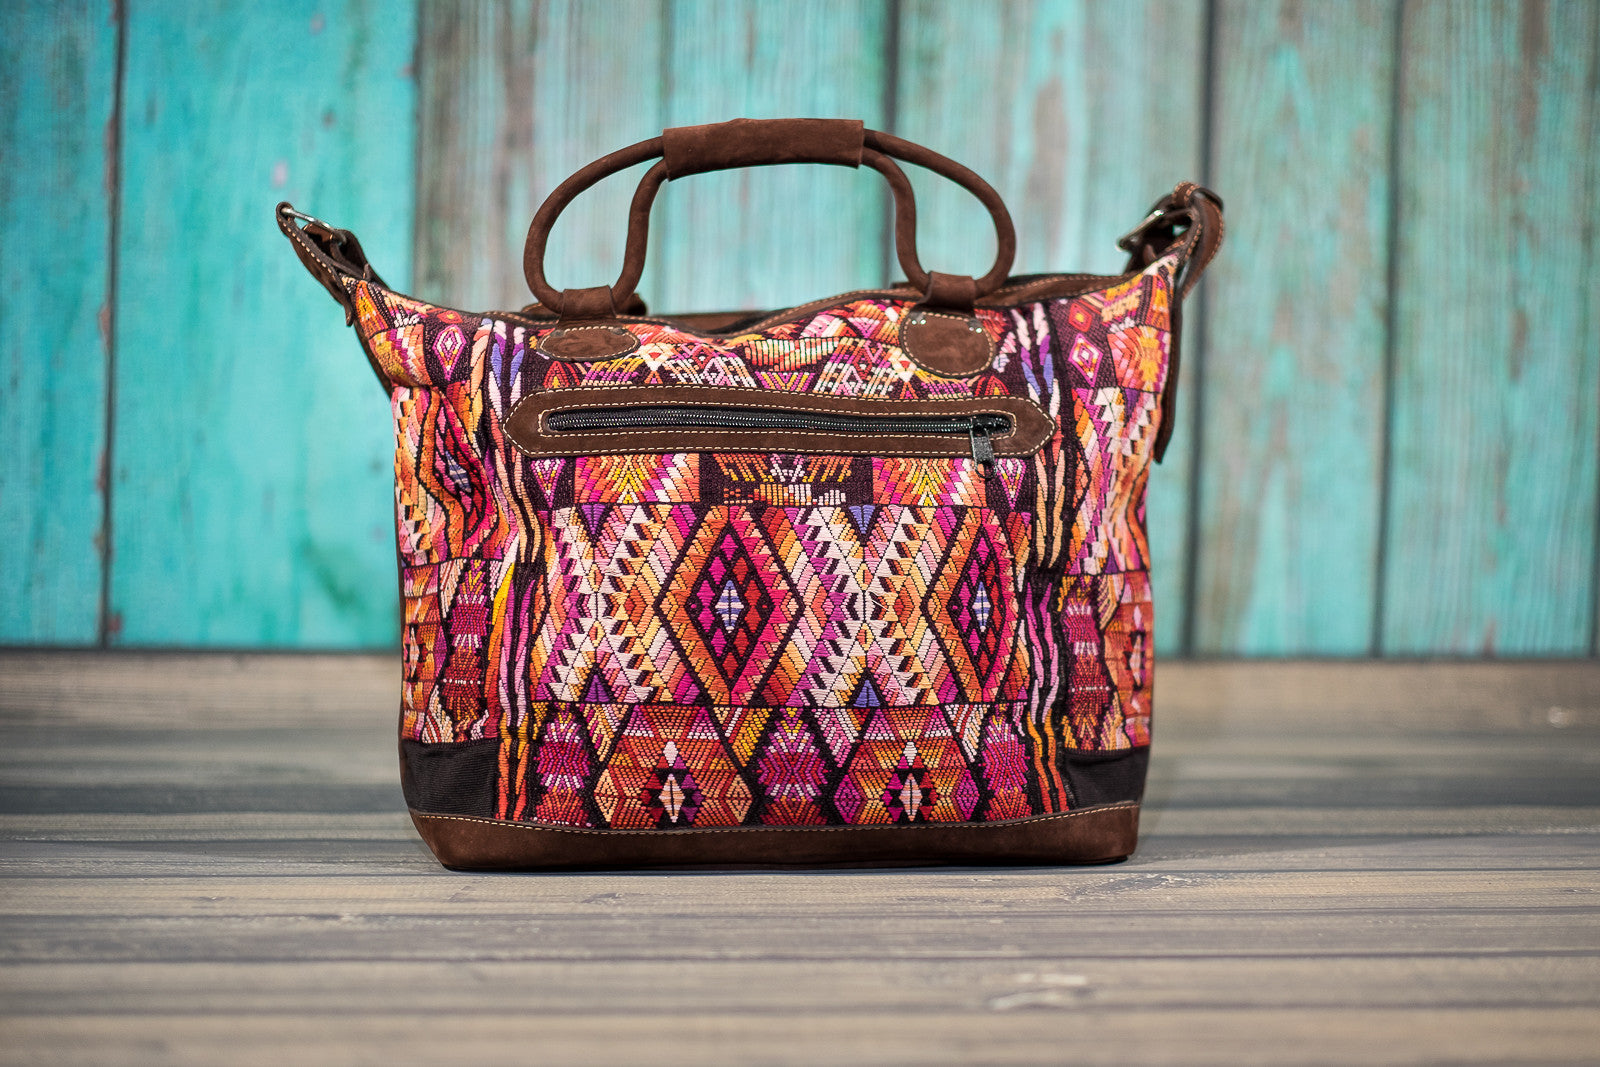 Huipil Overnighter Tote Bag Cross Body Purse Diaper Bag XOXO